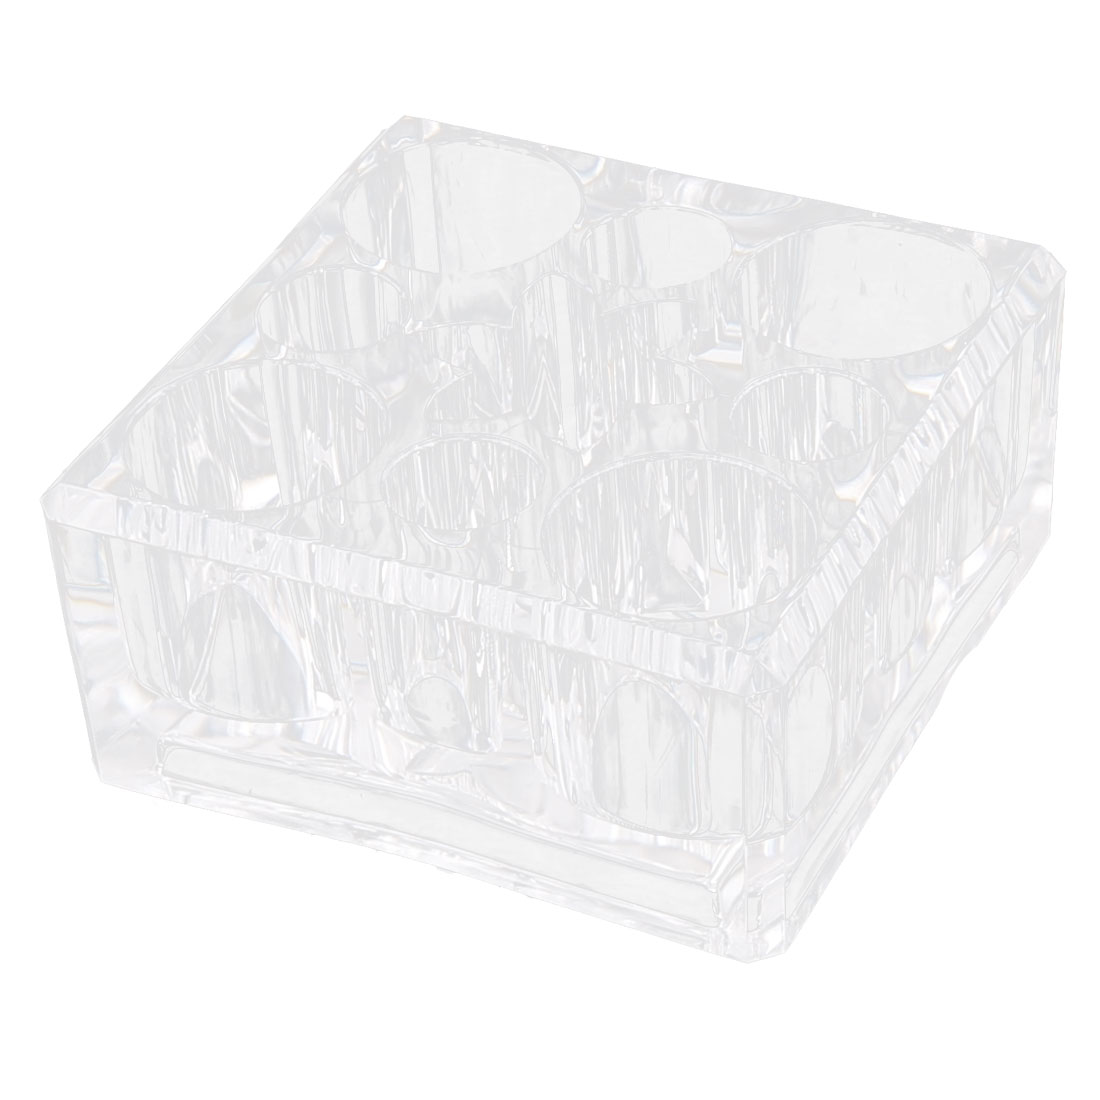 Acrylic 9 Compartments Brush Cosmetic Case Holder Jewelry Box Organizer Clear